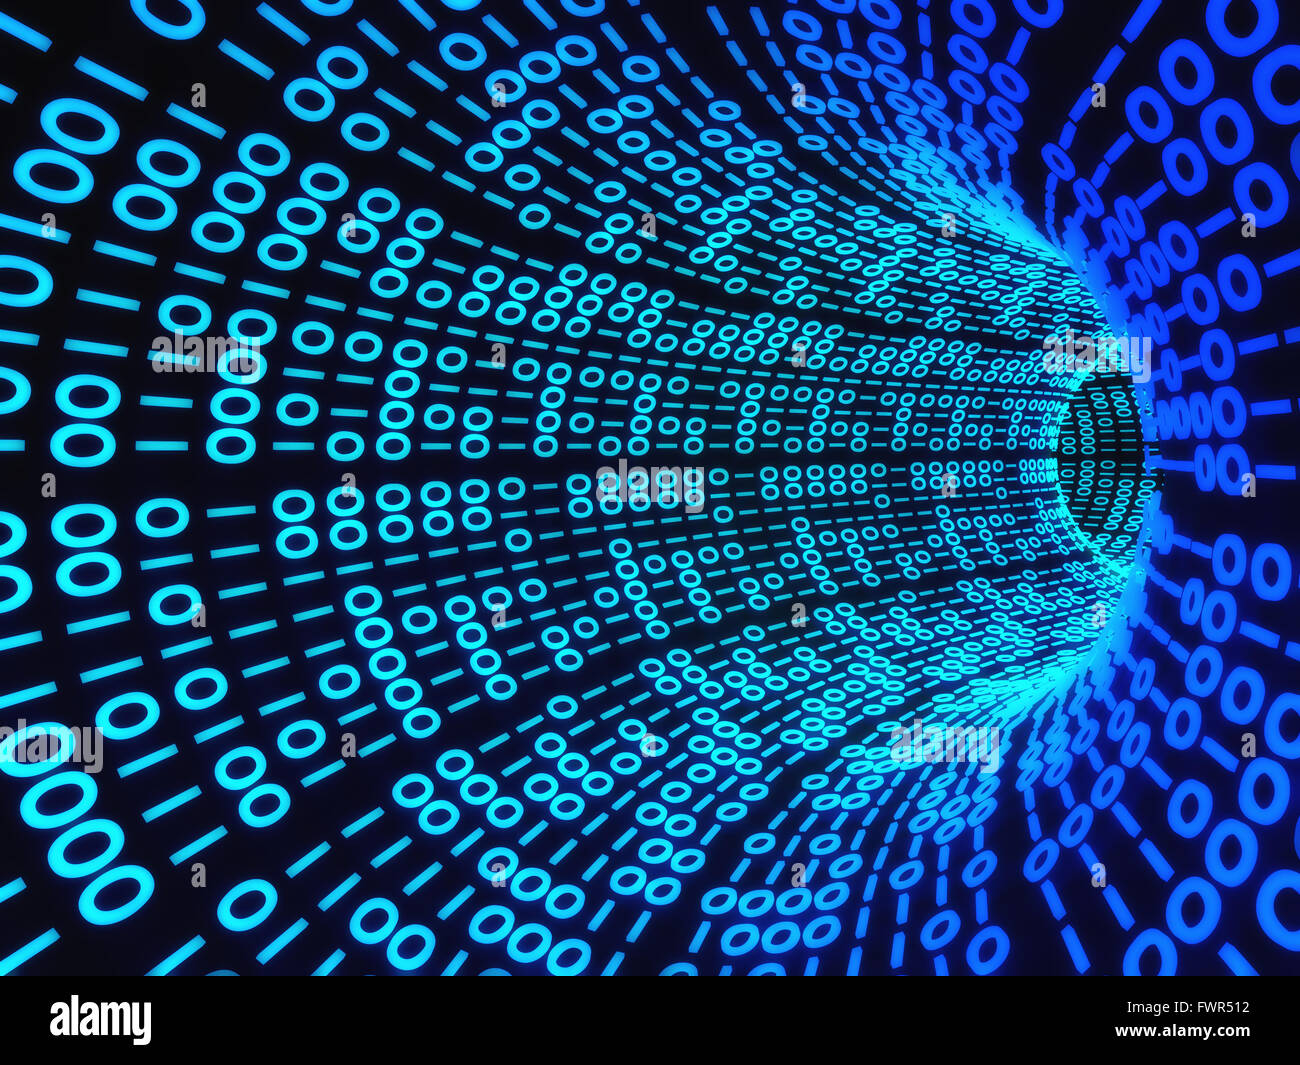 Twisting Tunnel Of Digital Binary Computer Code Stock